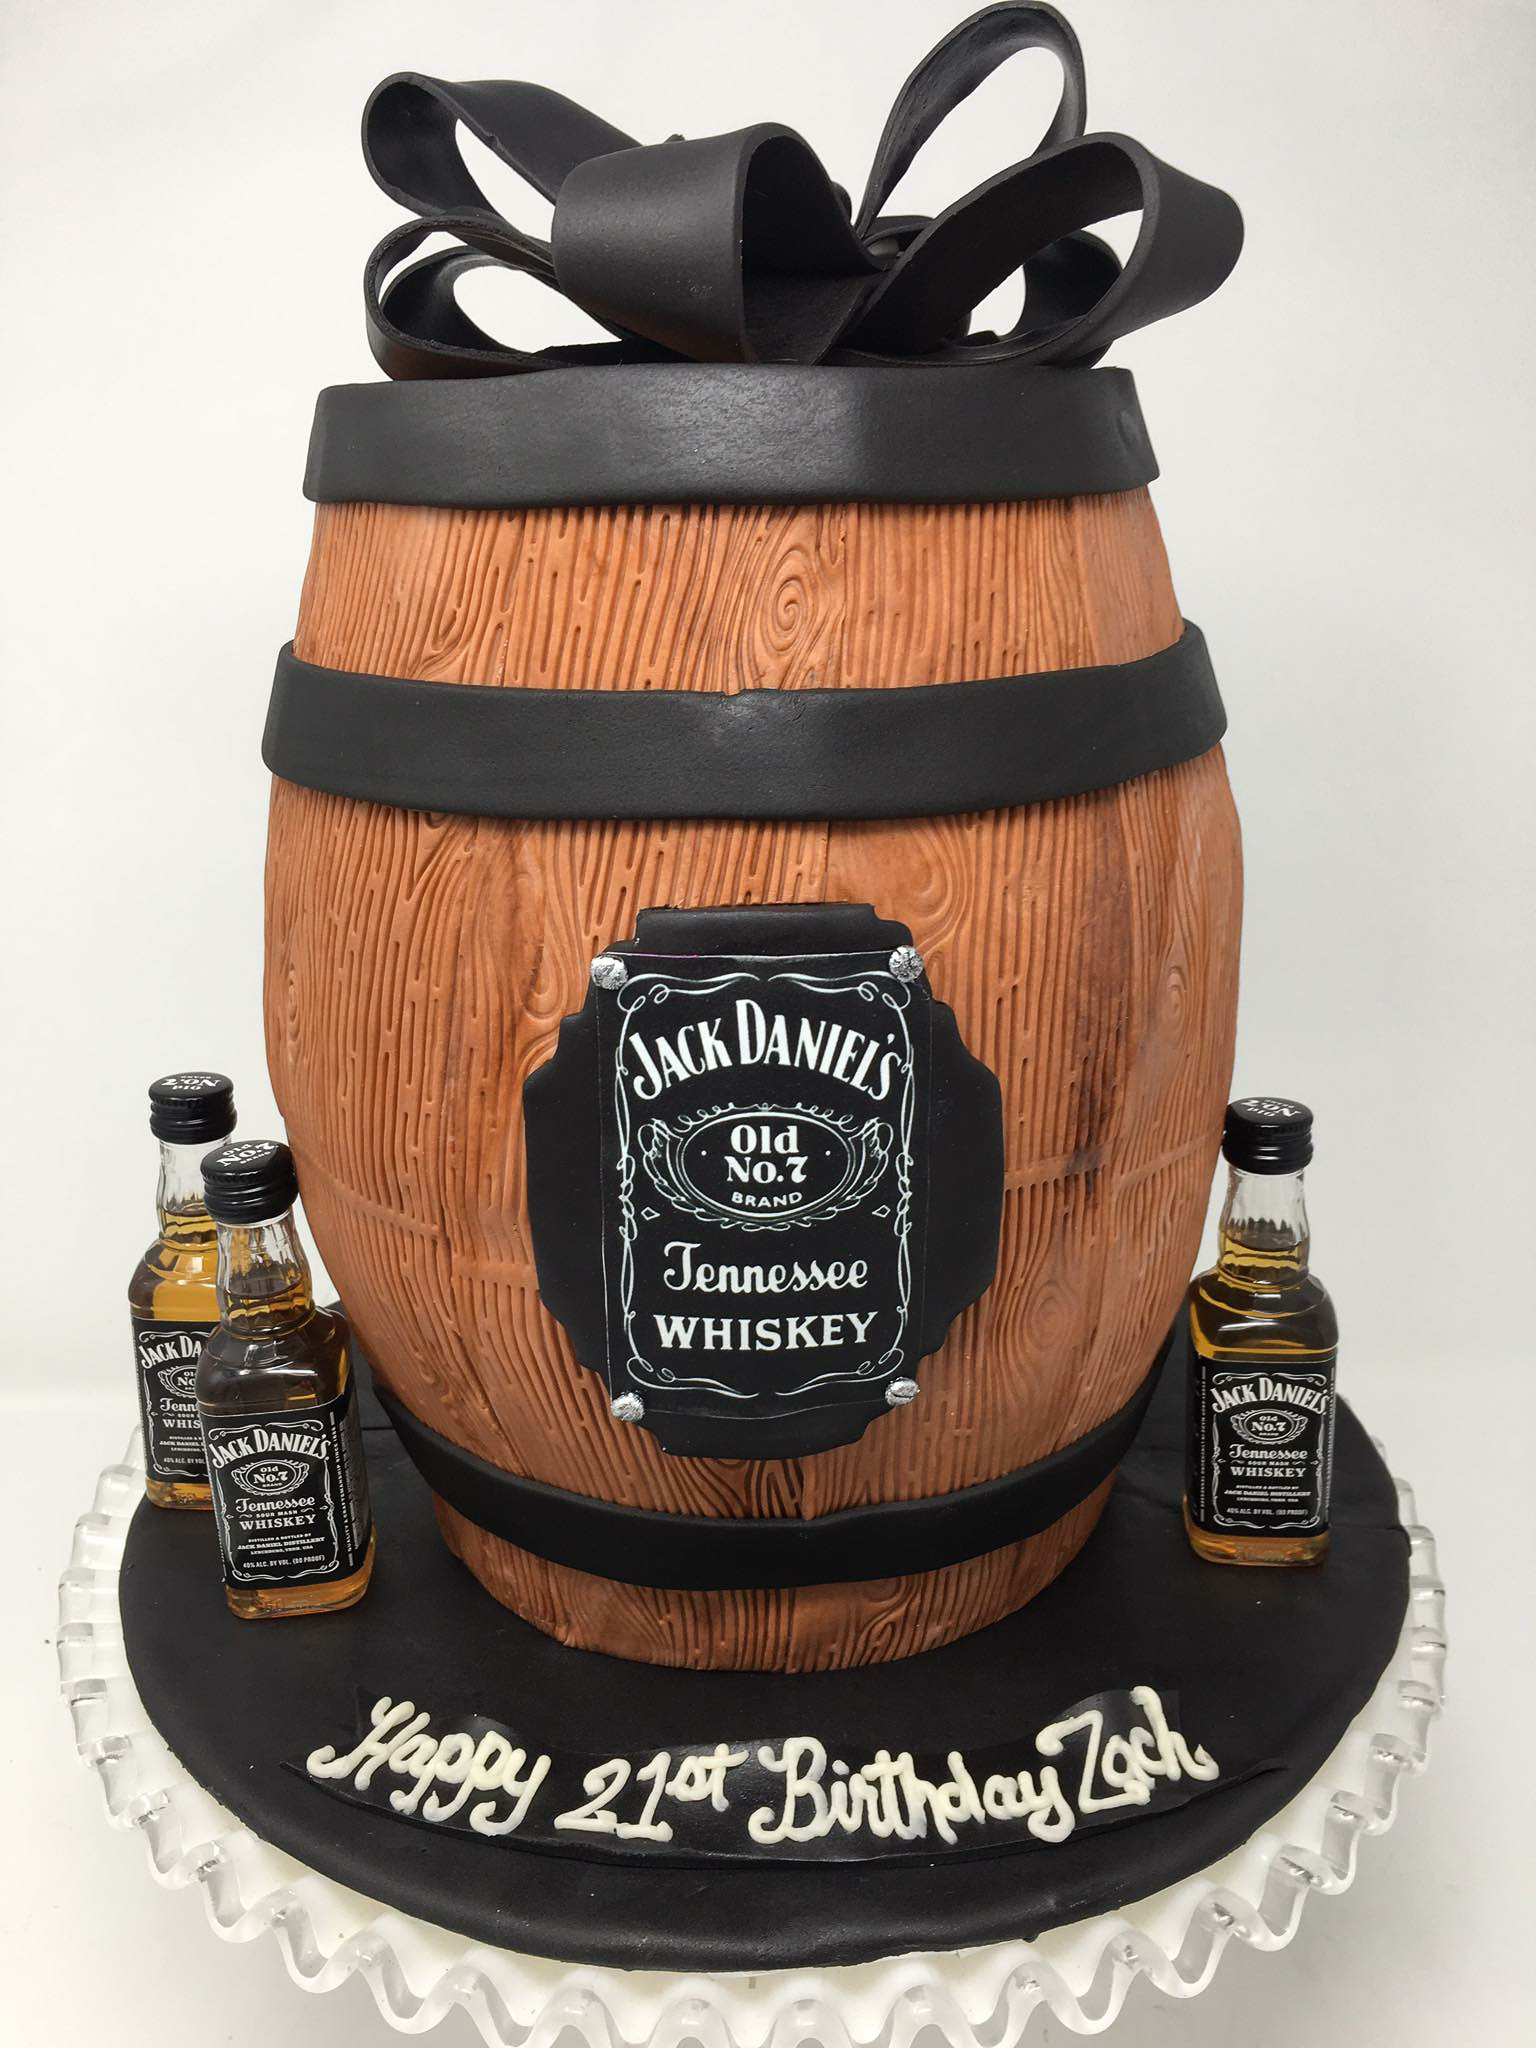 Jack Daniels Barrel cake / Image courtesy of Oliver's Desserts // Published: 3.17.18